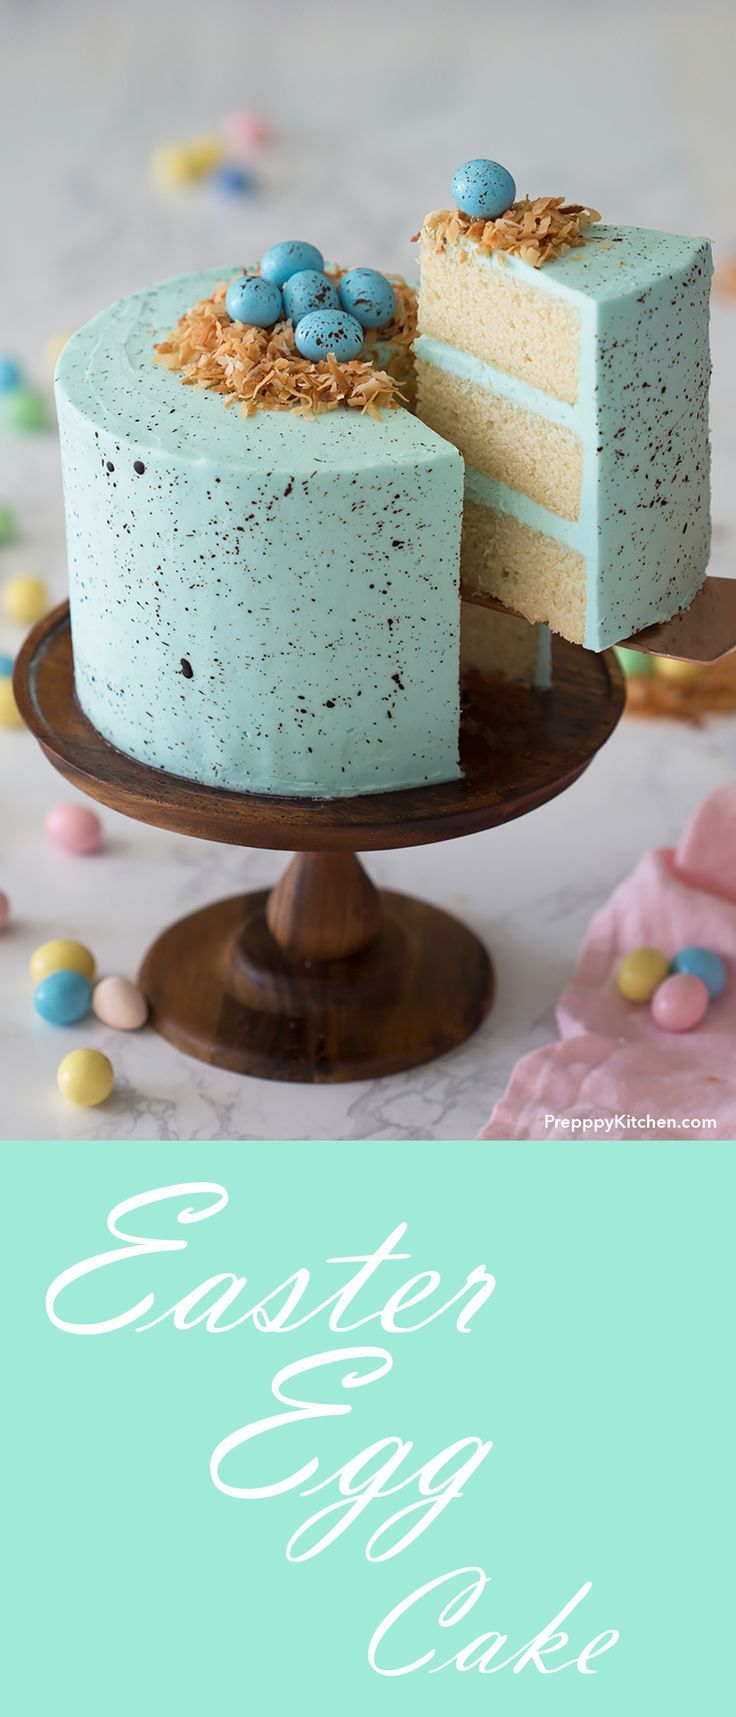 Easter Egg Cake - Classic Robin's Egg Recipe made with moist vanilla cake and a simple vanilla buttercream   Easter Egg Ideas, Easter Egg Chocolate Recipes, Easter Egg Dessert, #easter #recipes #desserts #chocolate #vanilla